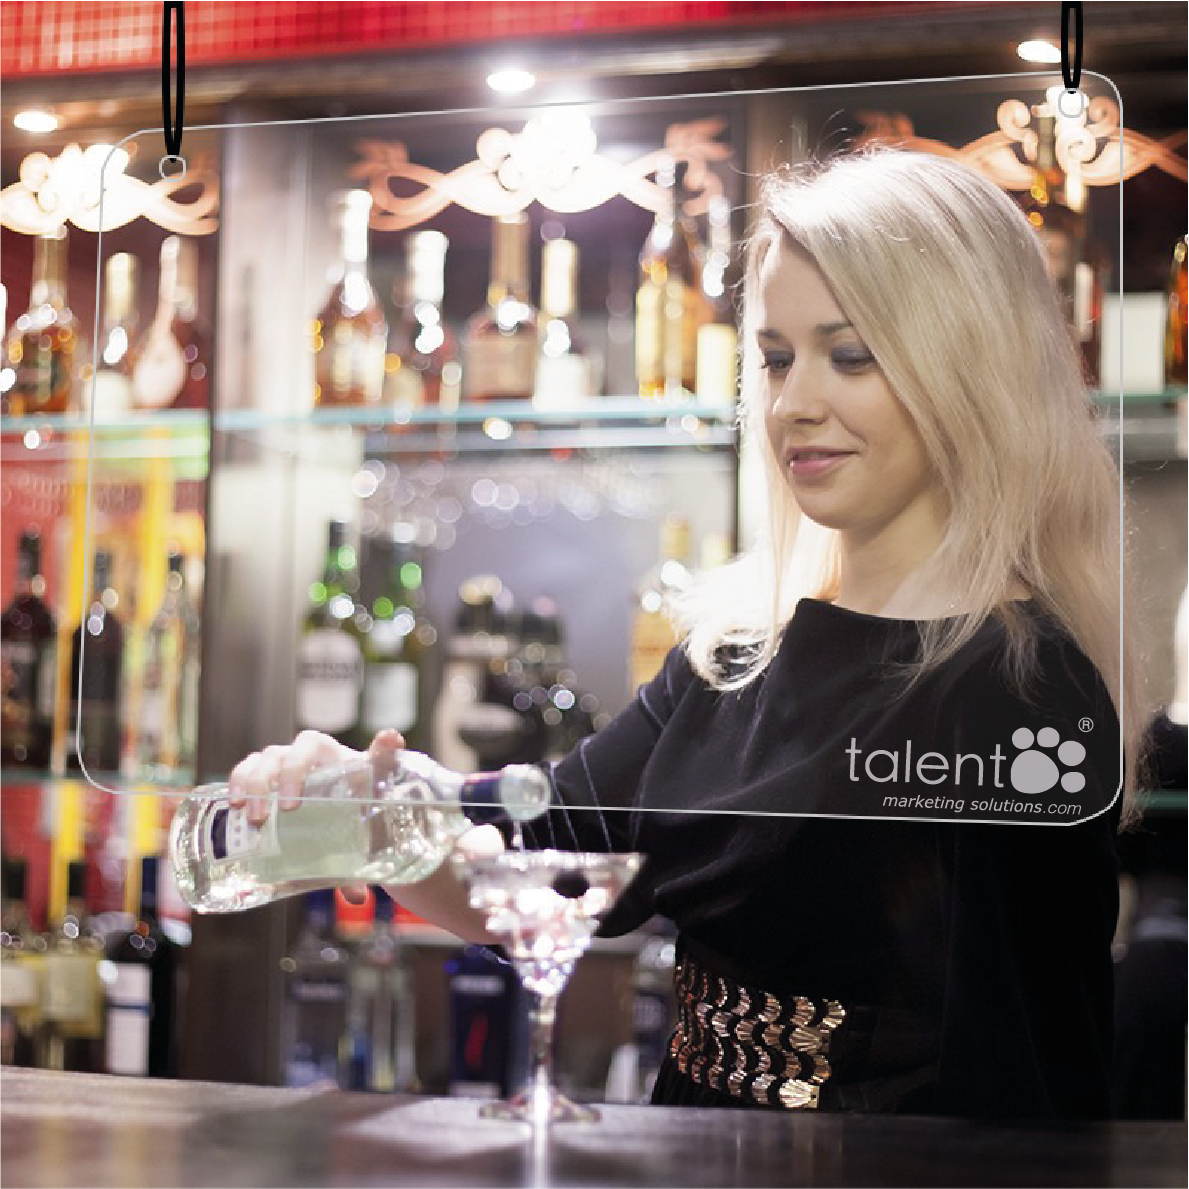 PANTALLAS COLGANTES -HOSTELERIA-TALENTOMARKETINGSOLUTIONS